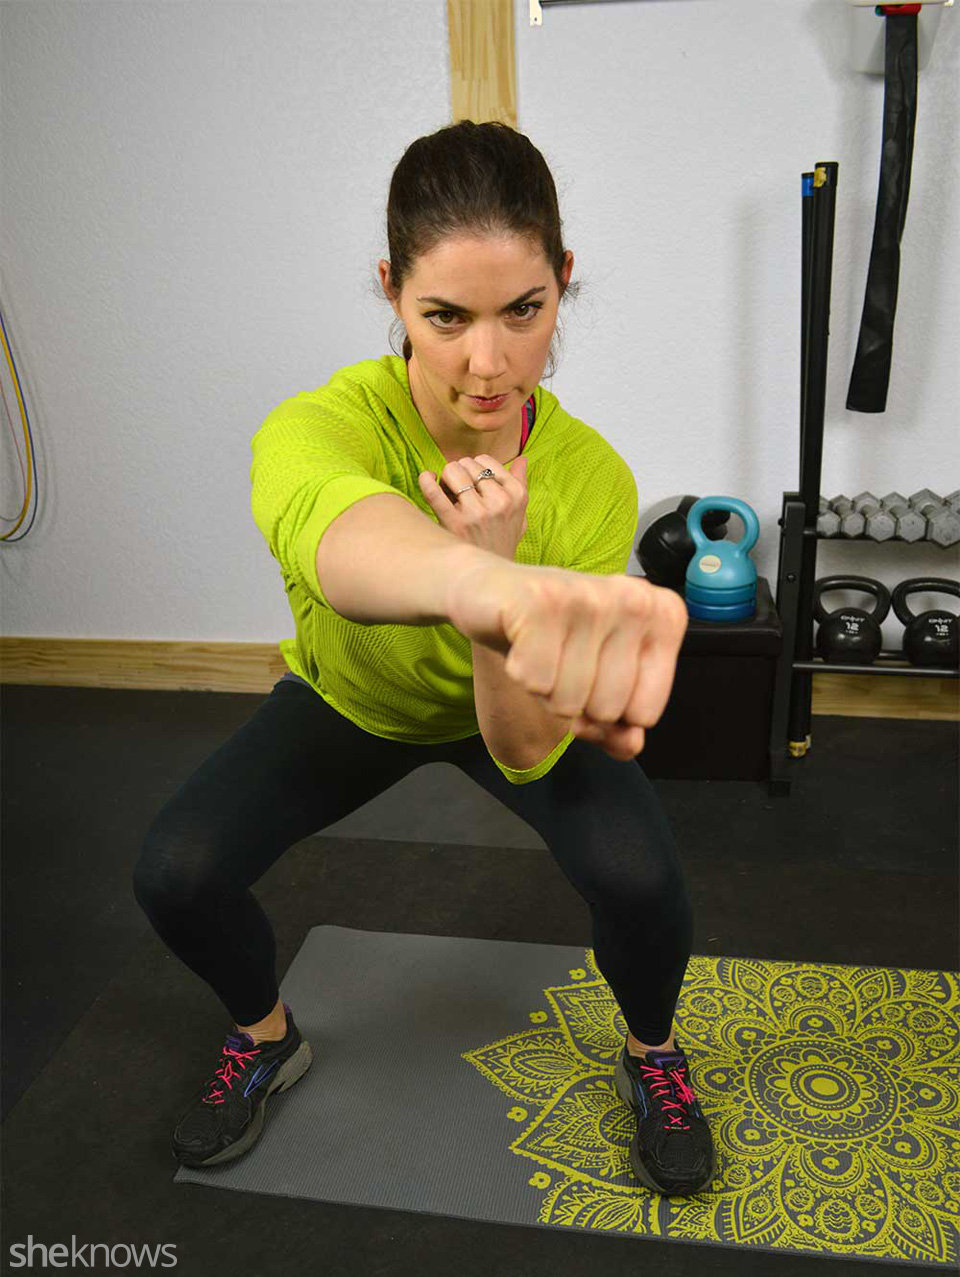 Low squat with alternating jabs